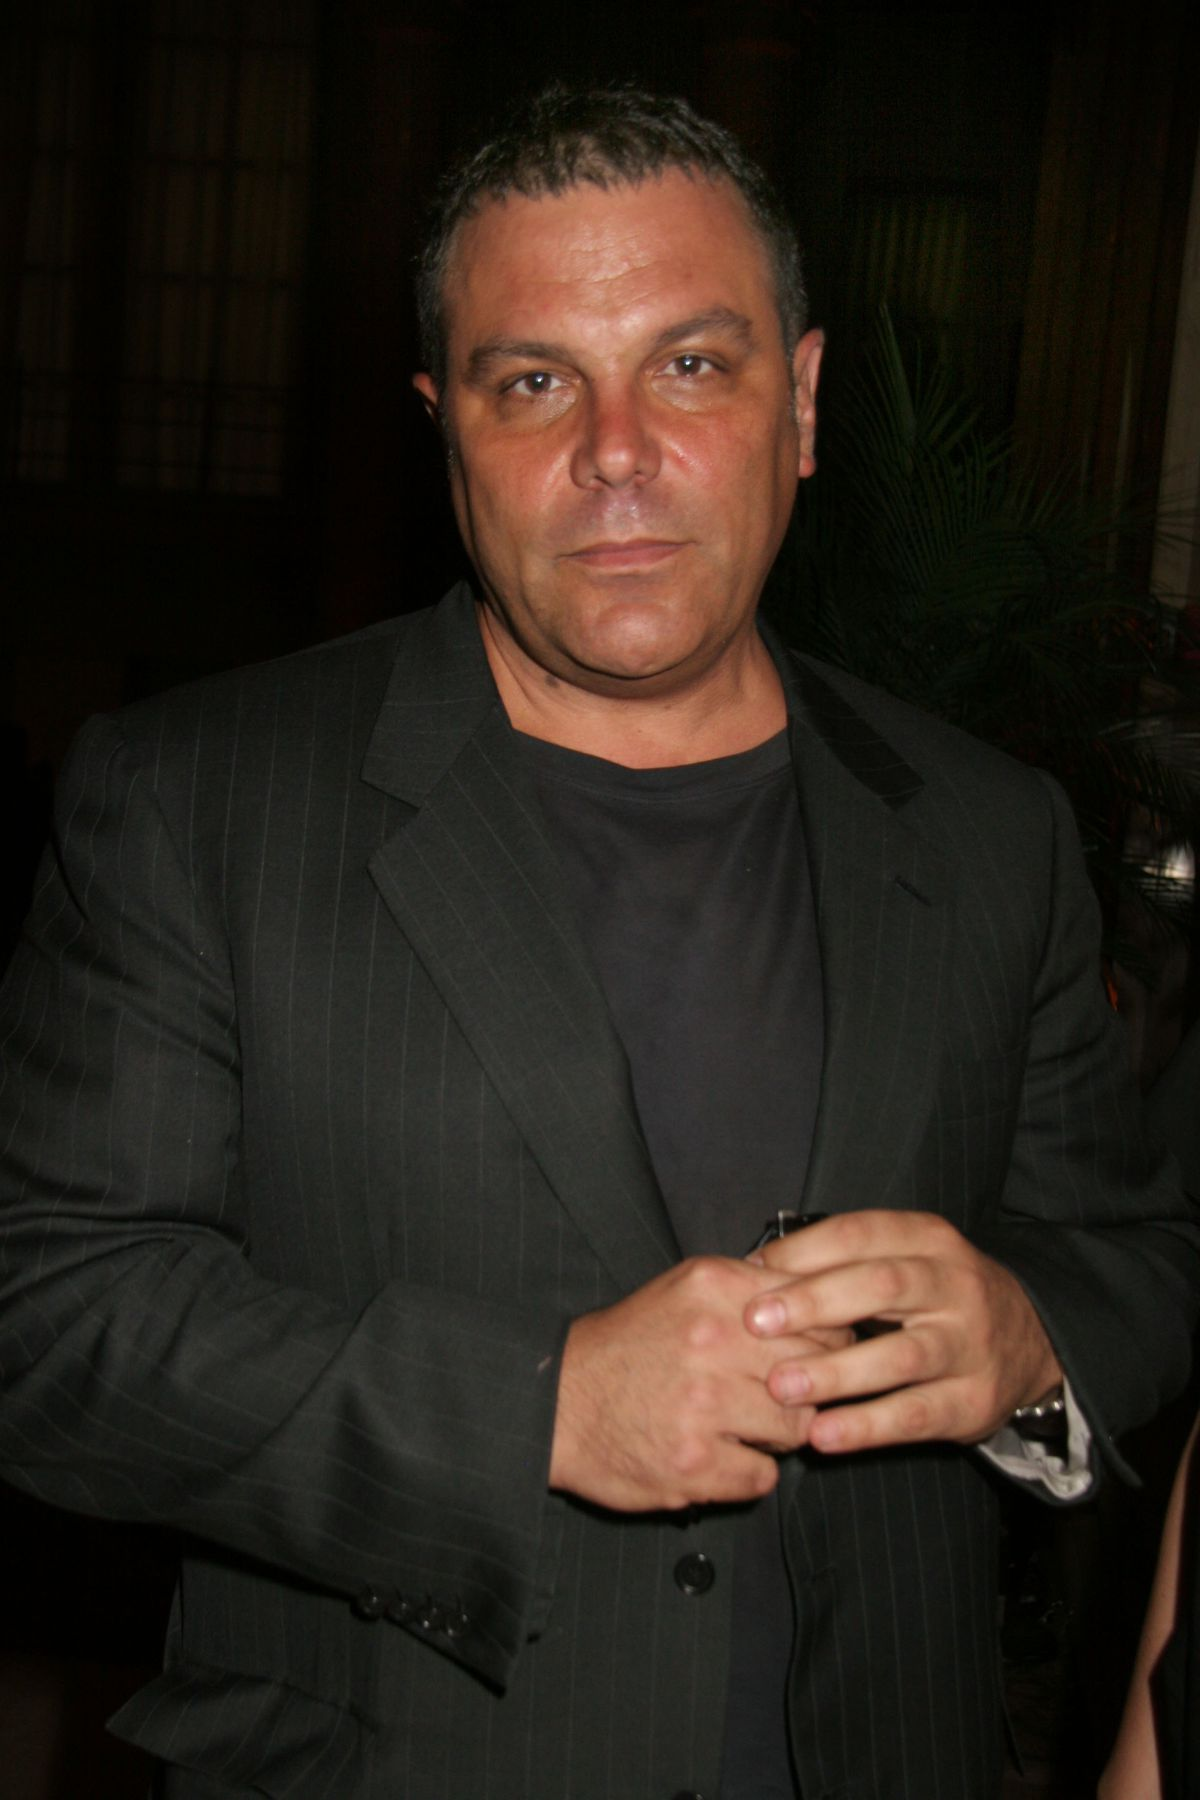 Restaurateur Stephen Starr in 2006, wearing a black suited suit and a black t-shirt